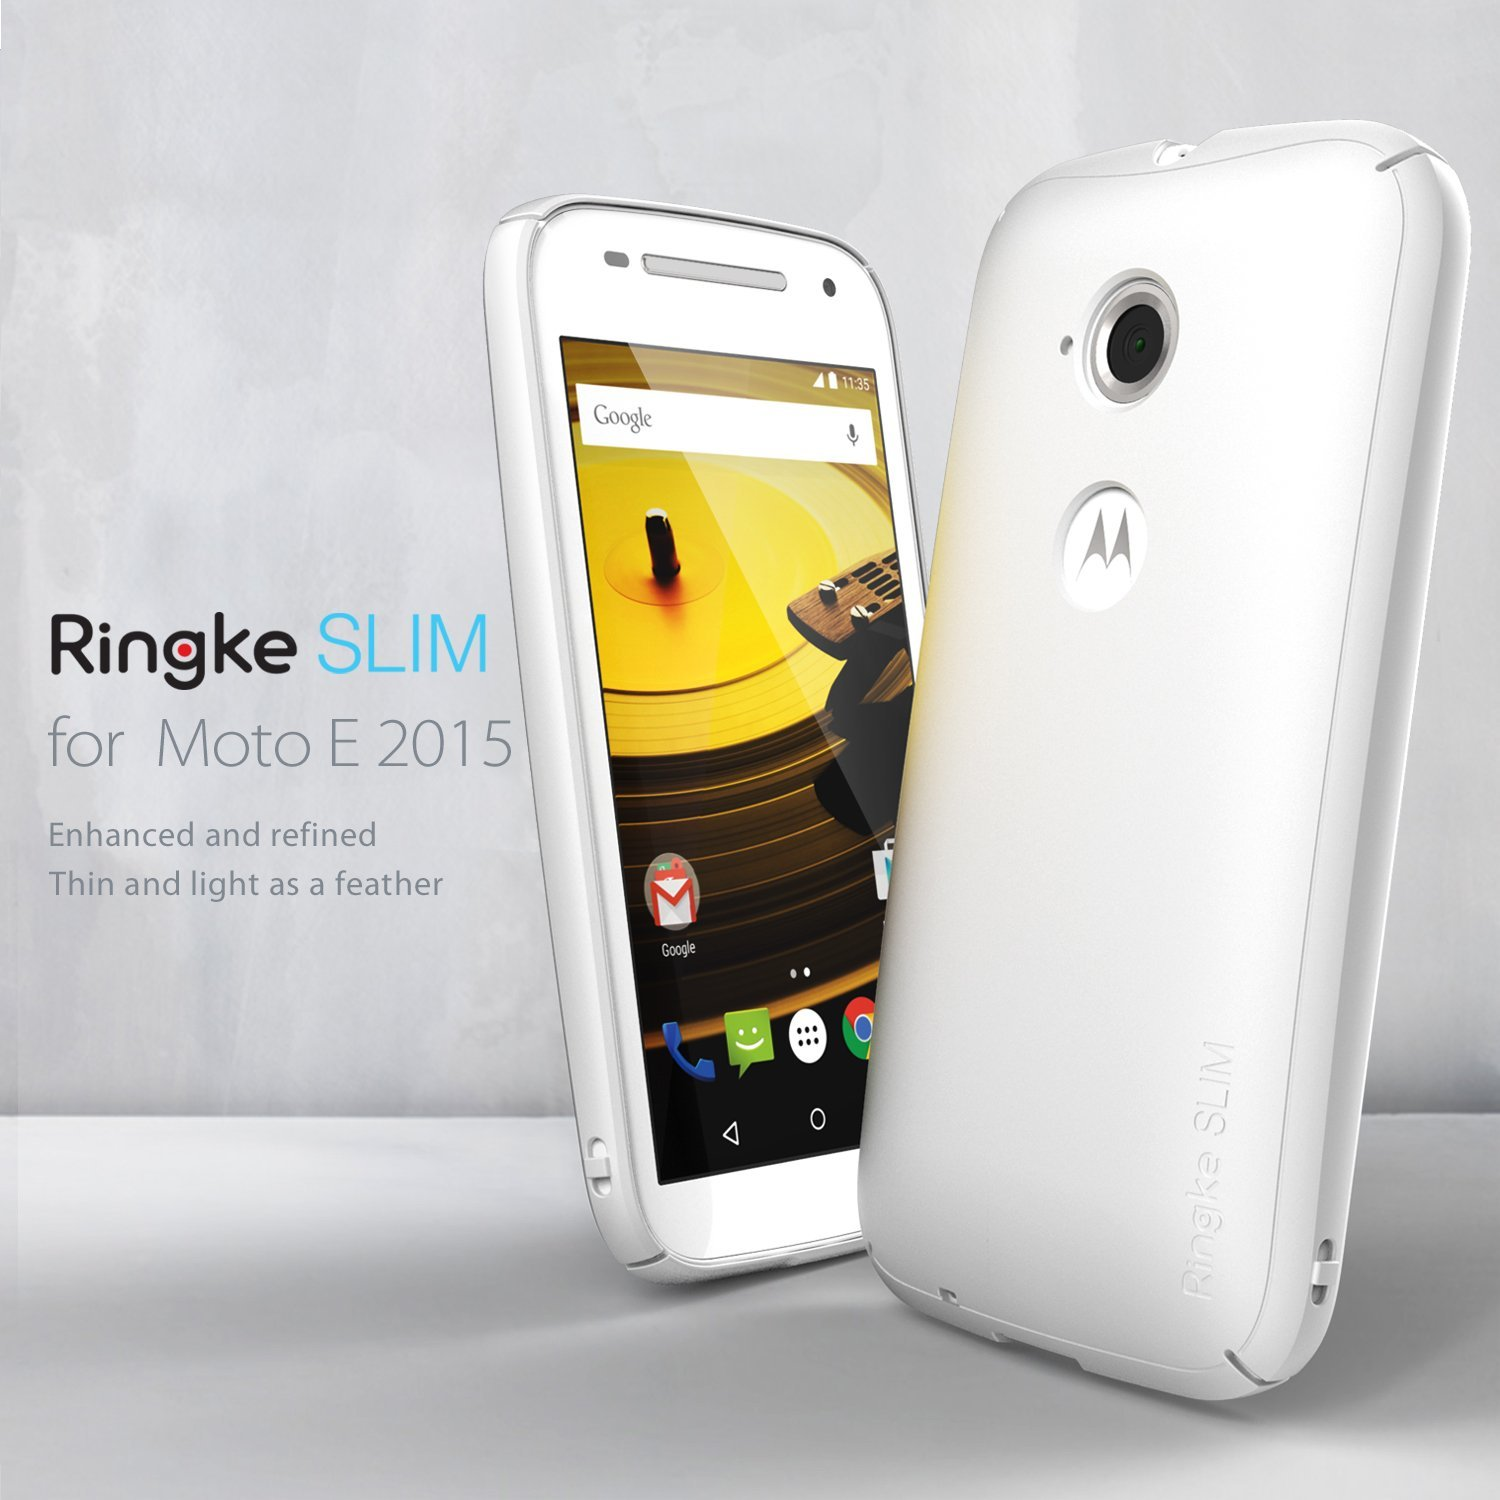 ringke slim moto e homescreen